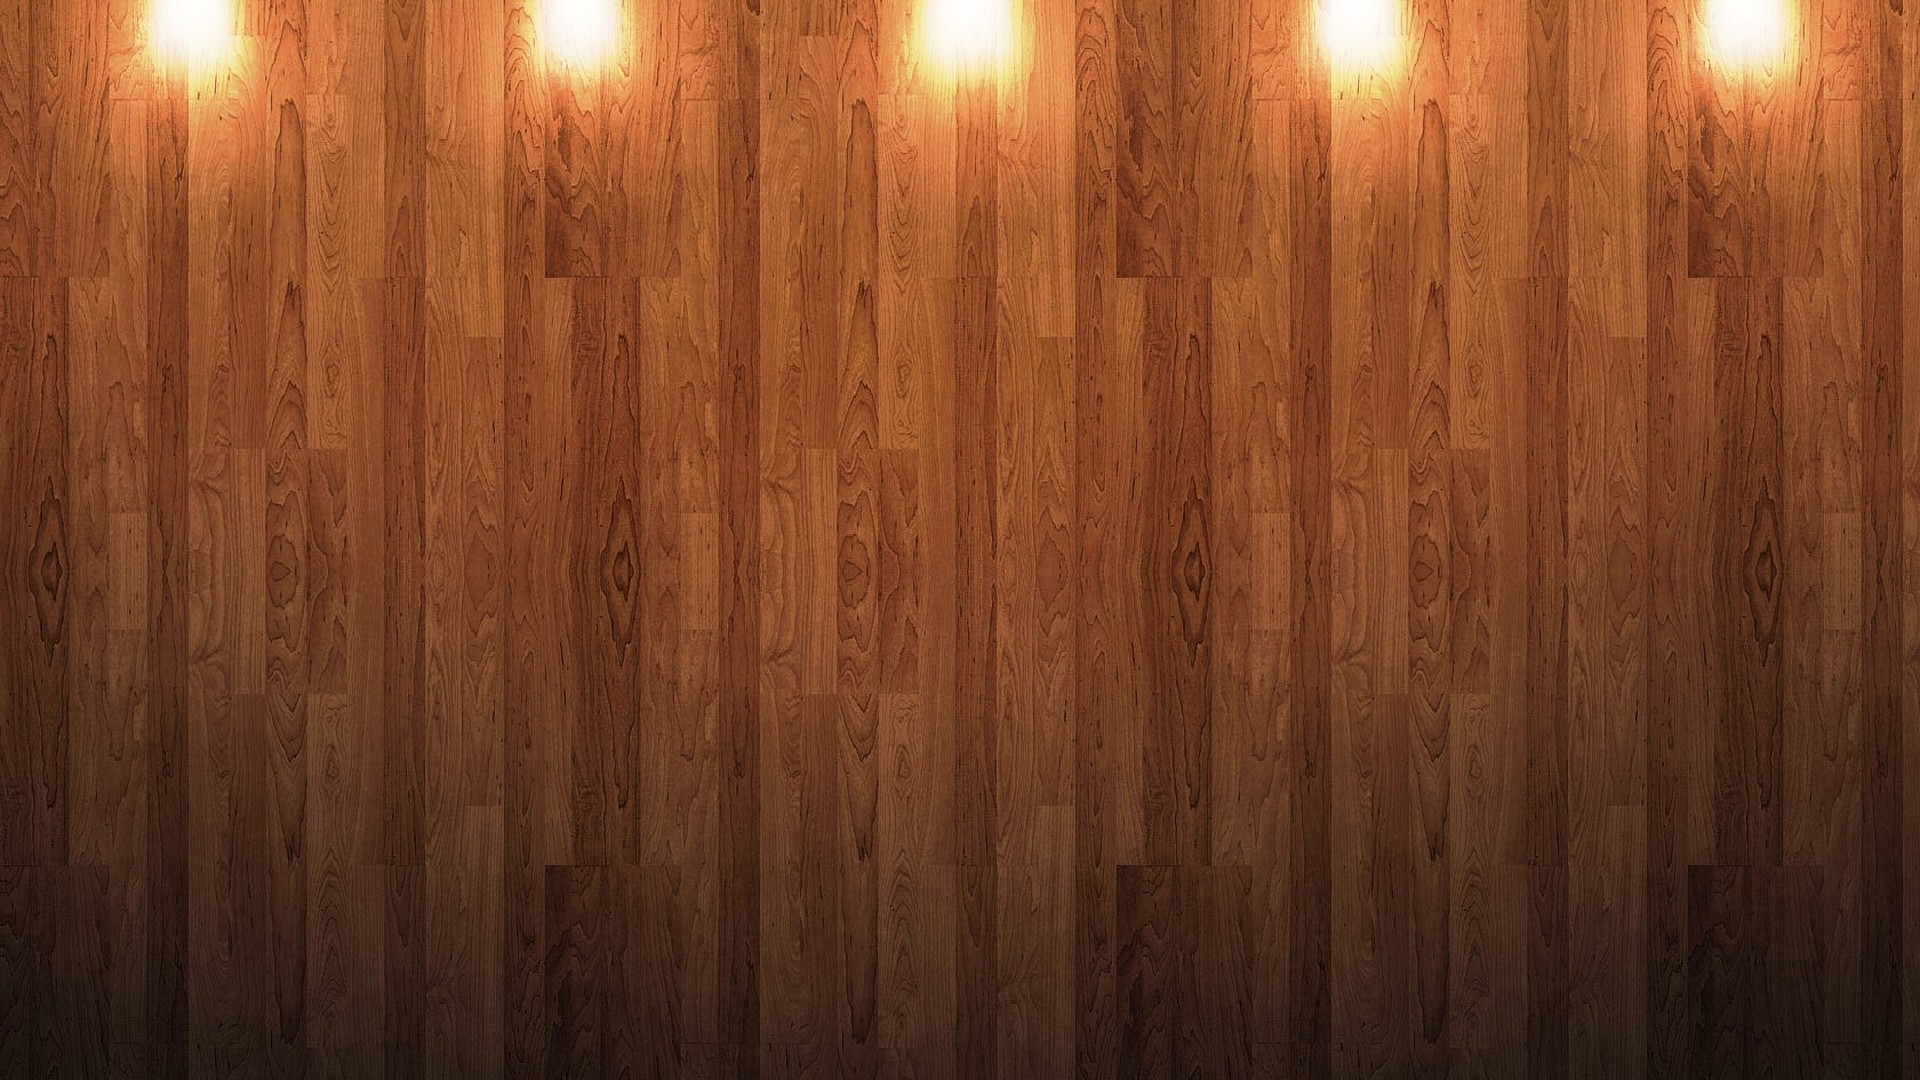 HD Wood Wallpaper 1